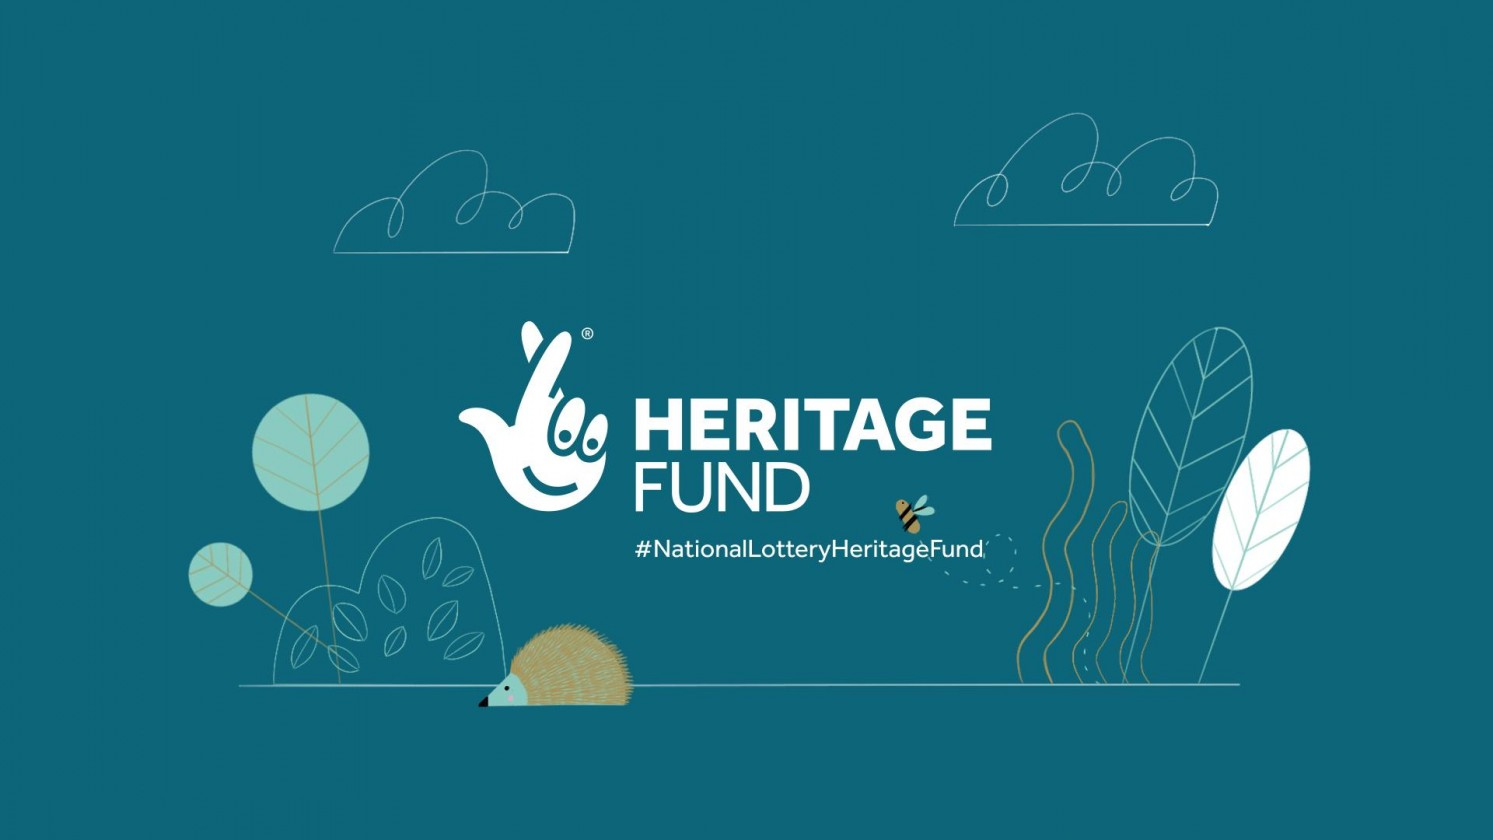 National Lottery Heritage fund branded closing shot